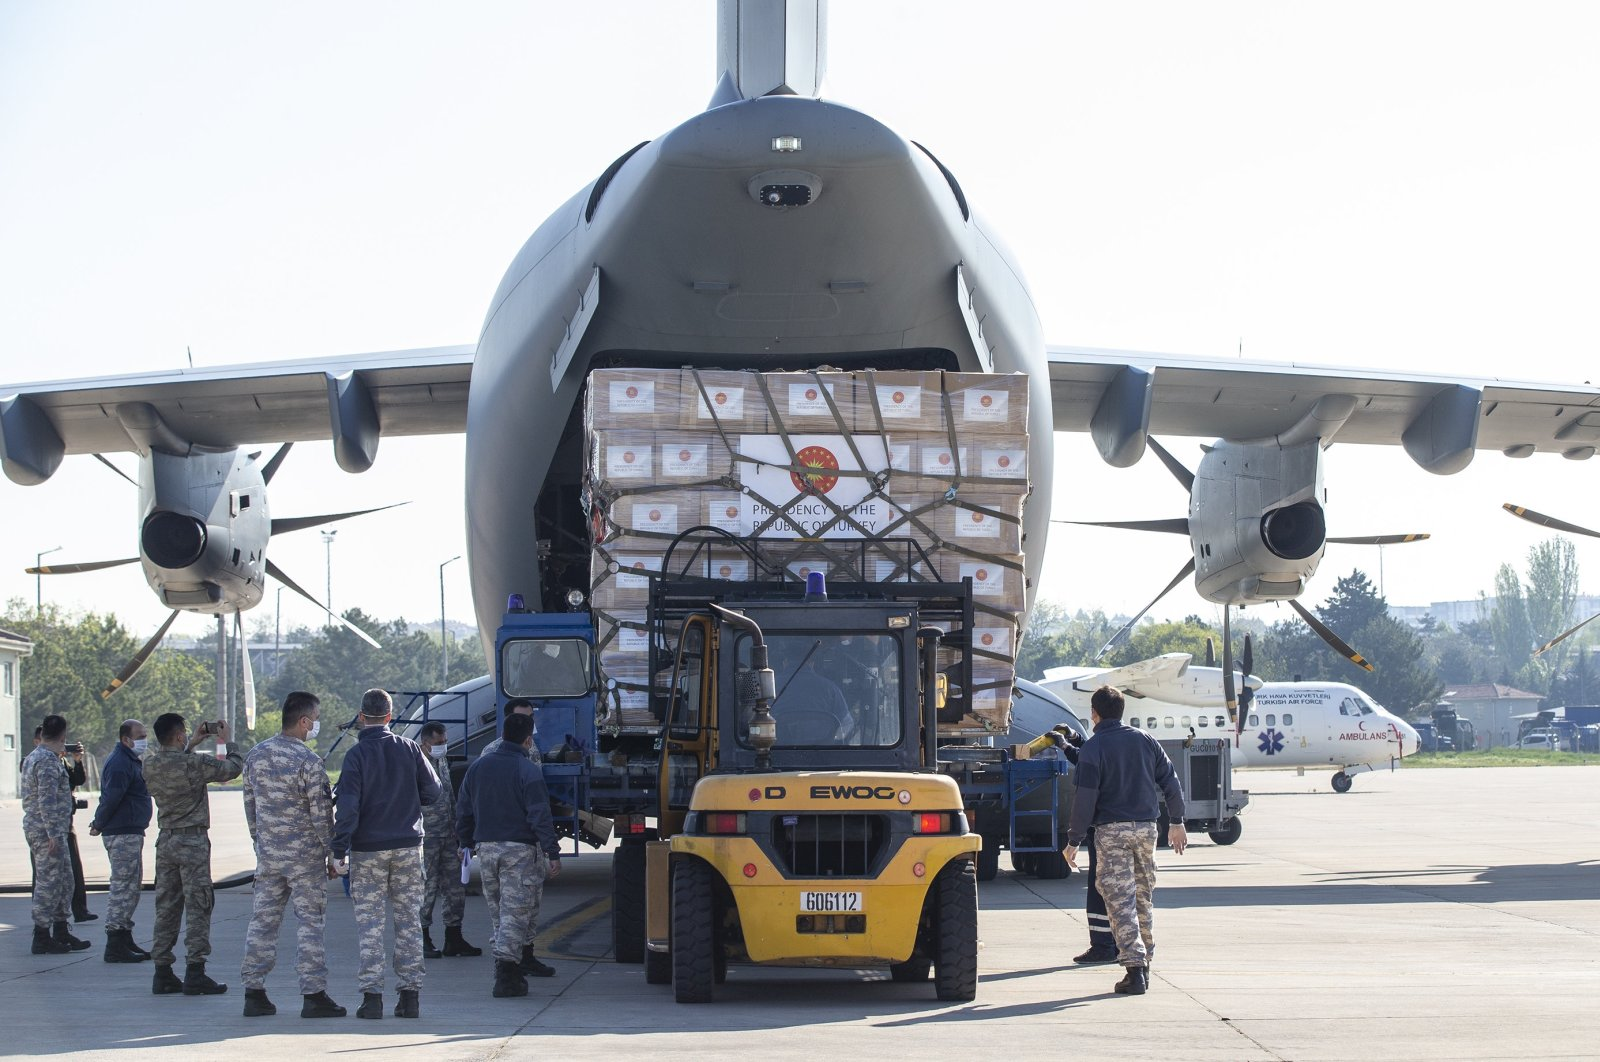 Turkey has sent medical aid to roughly 150 countries to help combat the coronavirus pandemic.